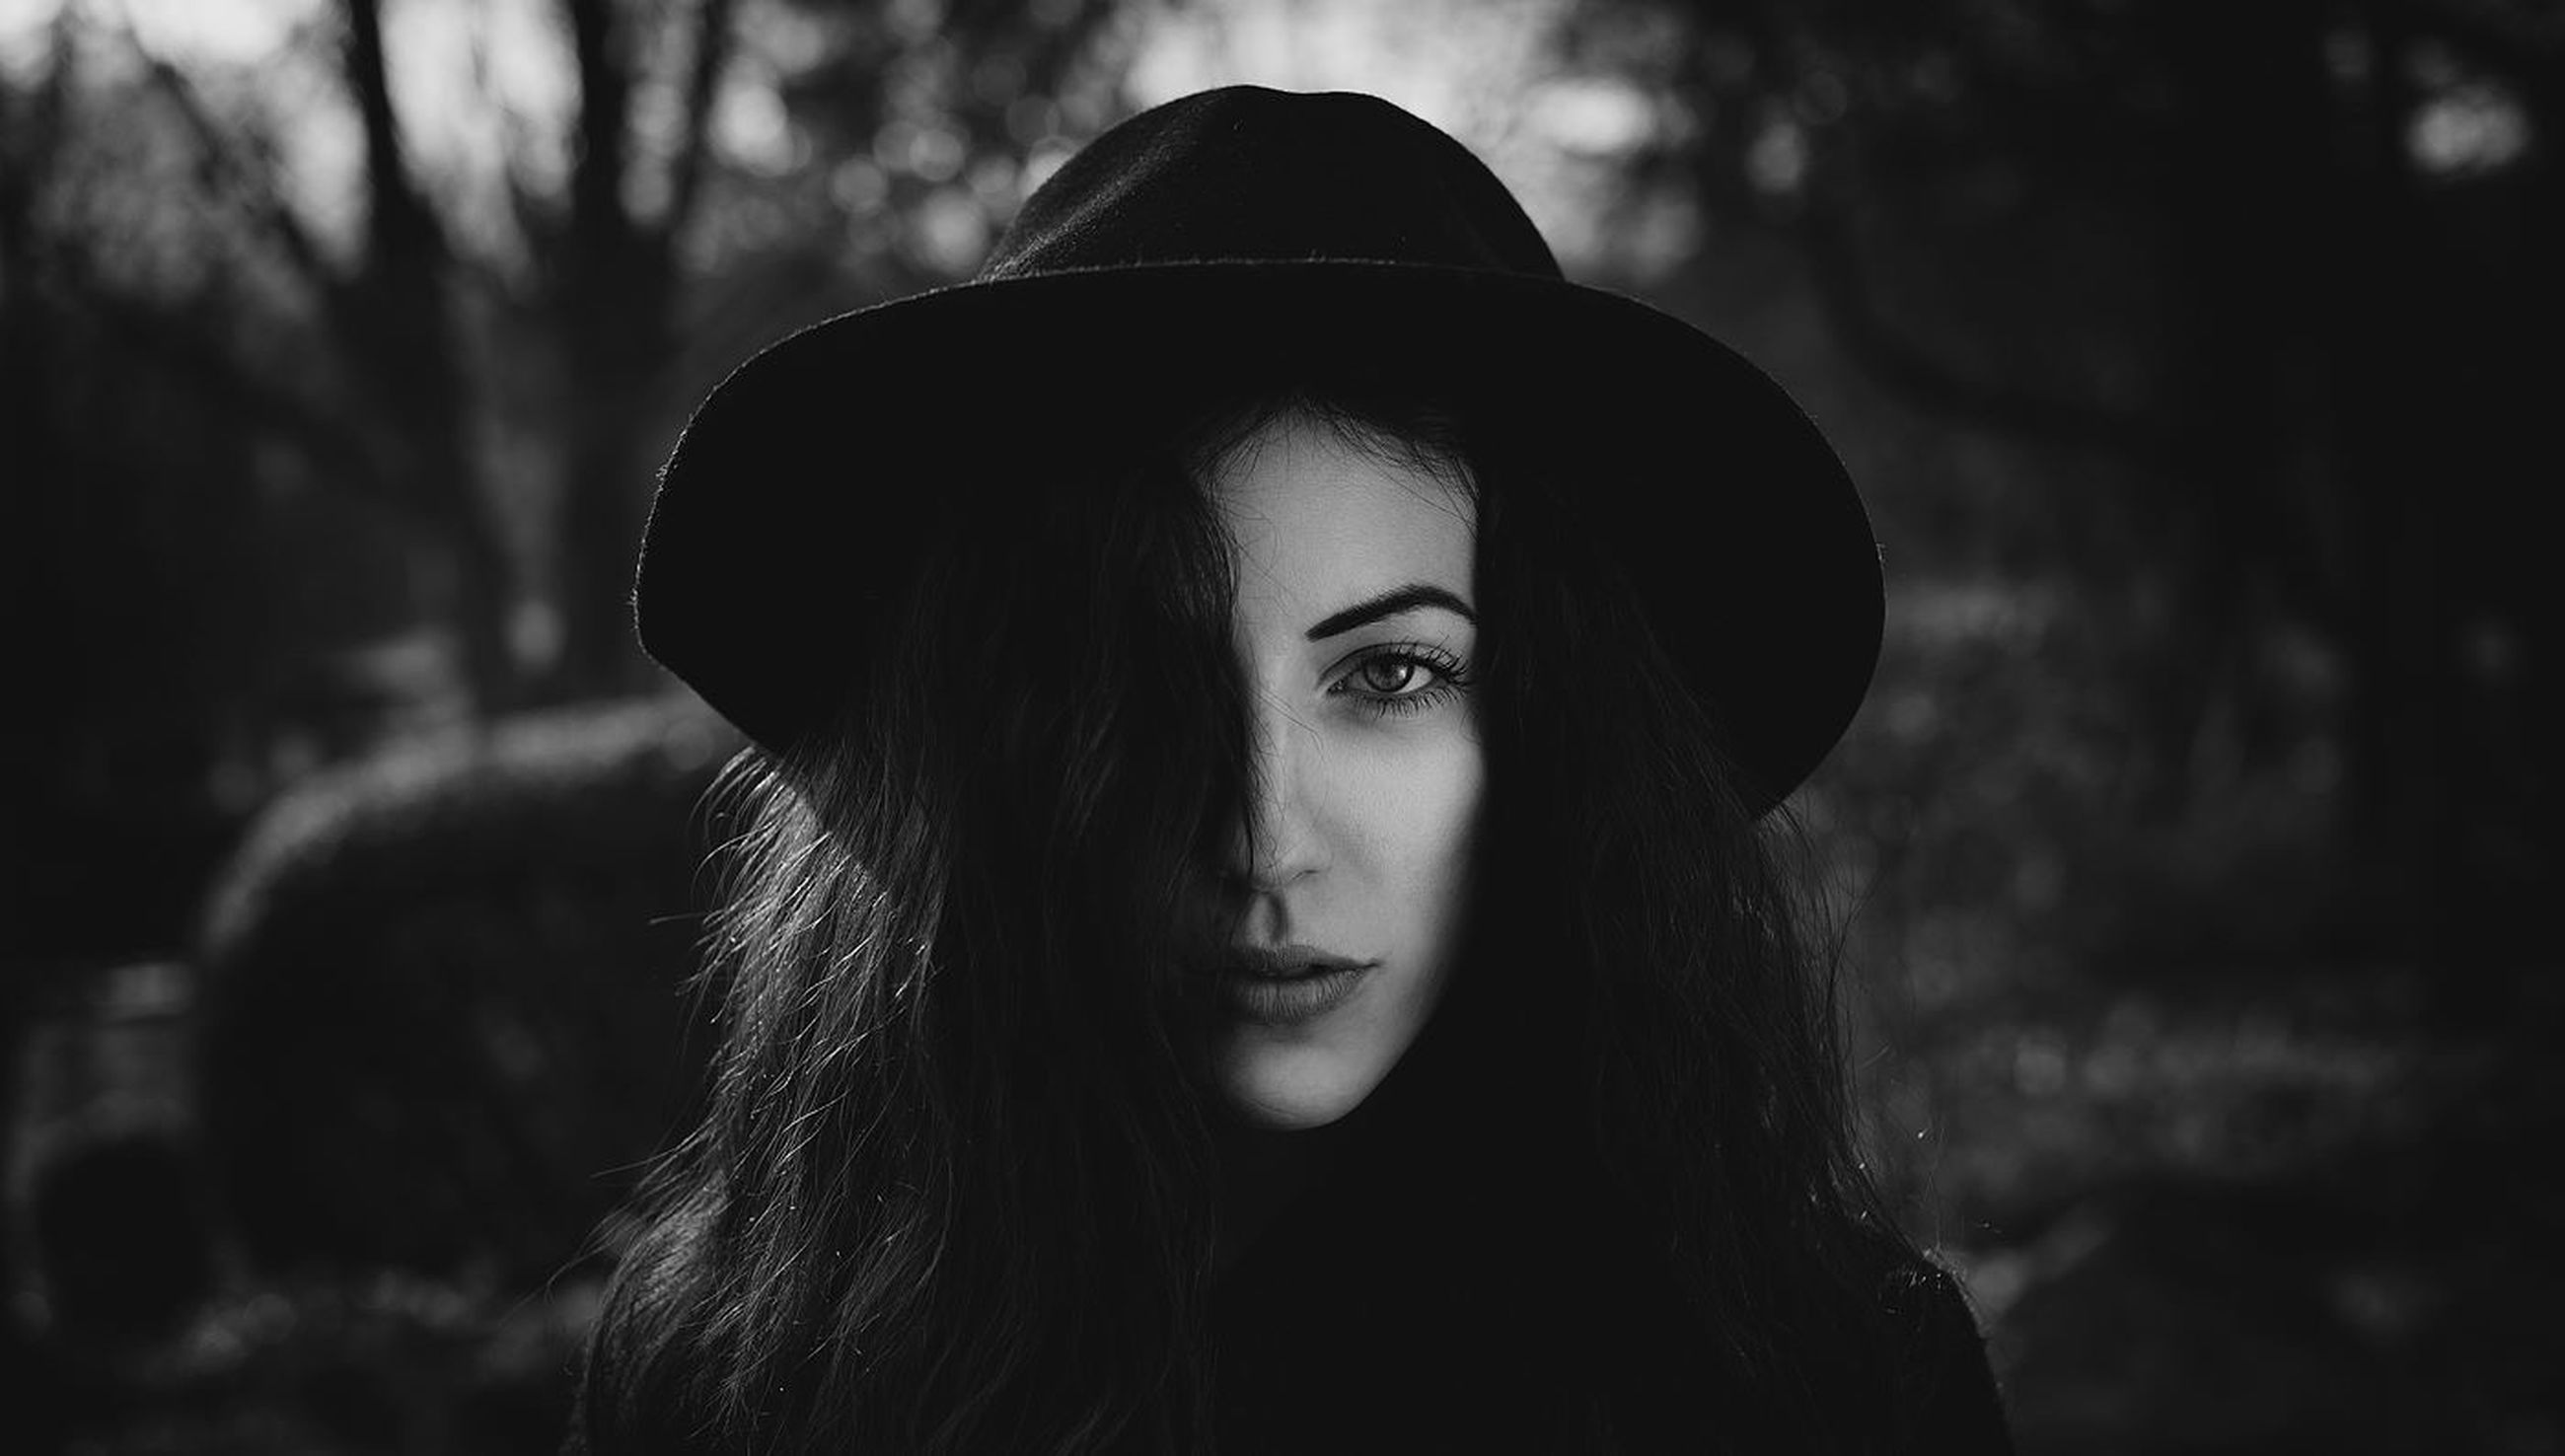 headshot, focus on foreground, young adult, lifestyles, portrait, looking at camera, leisure activity, close-up, young women, head and shoulders, person, long hair, front view, human face, contemplation, serious, brown hair